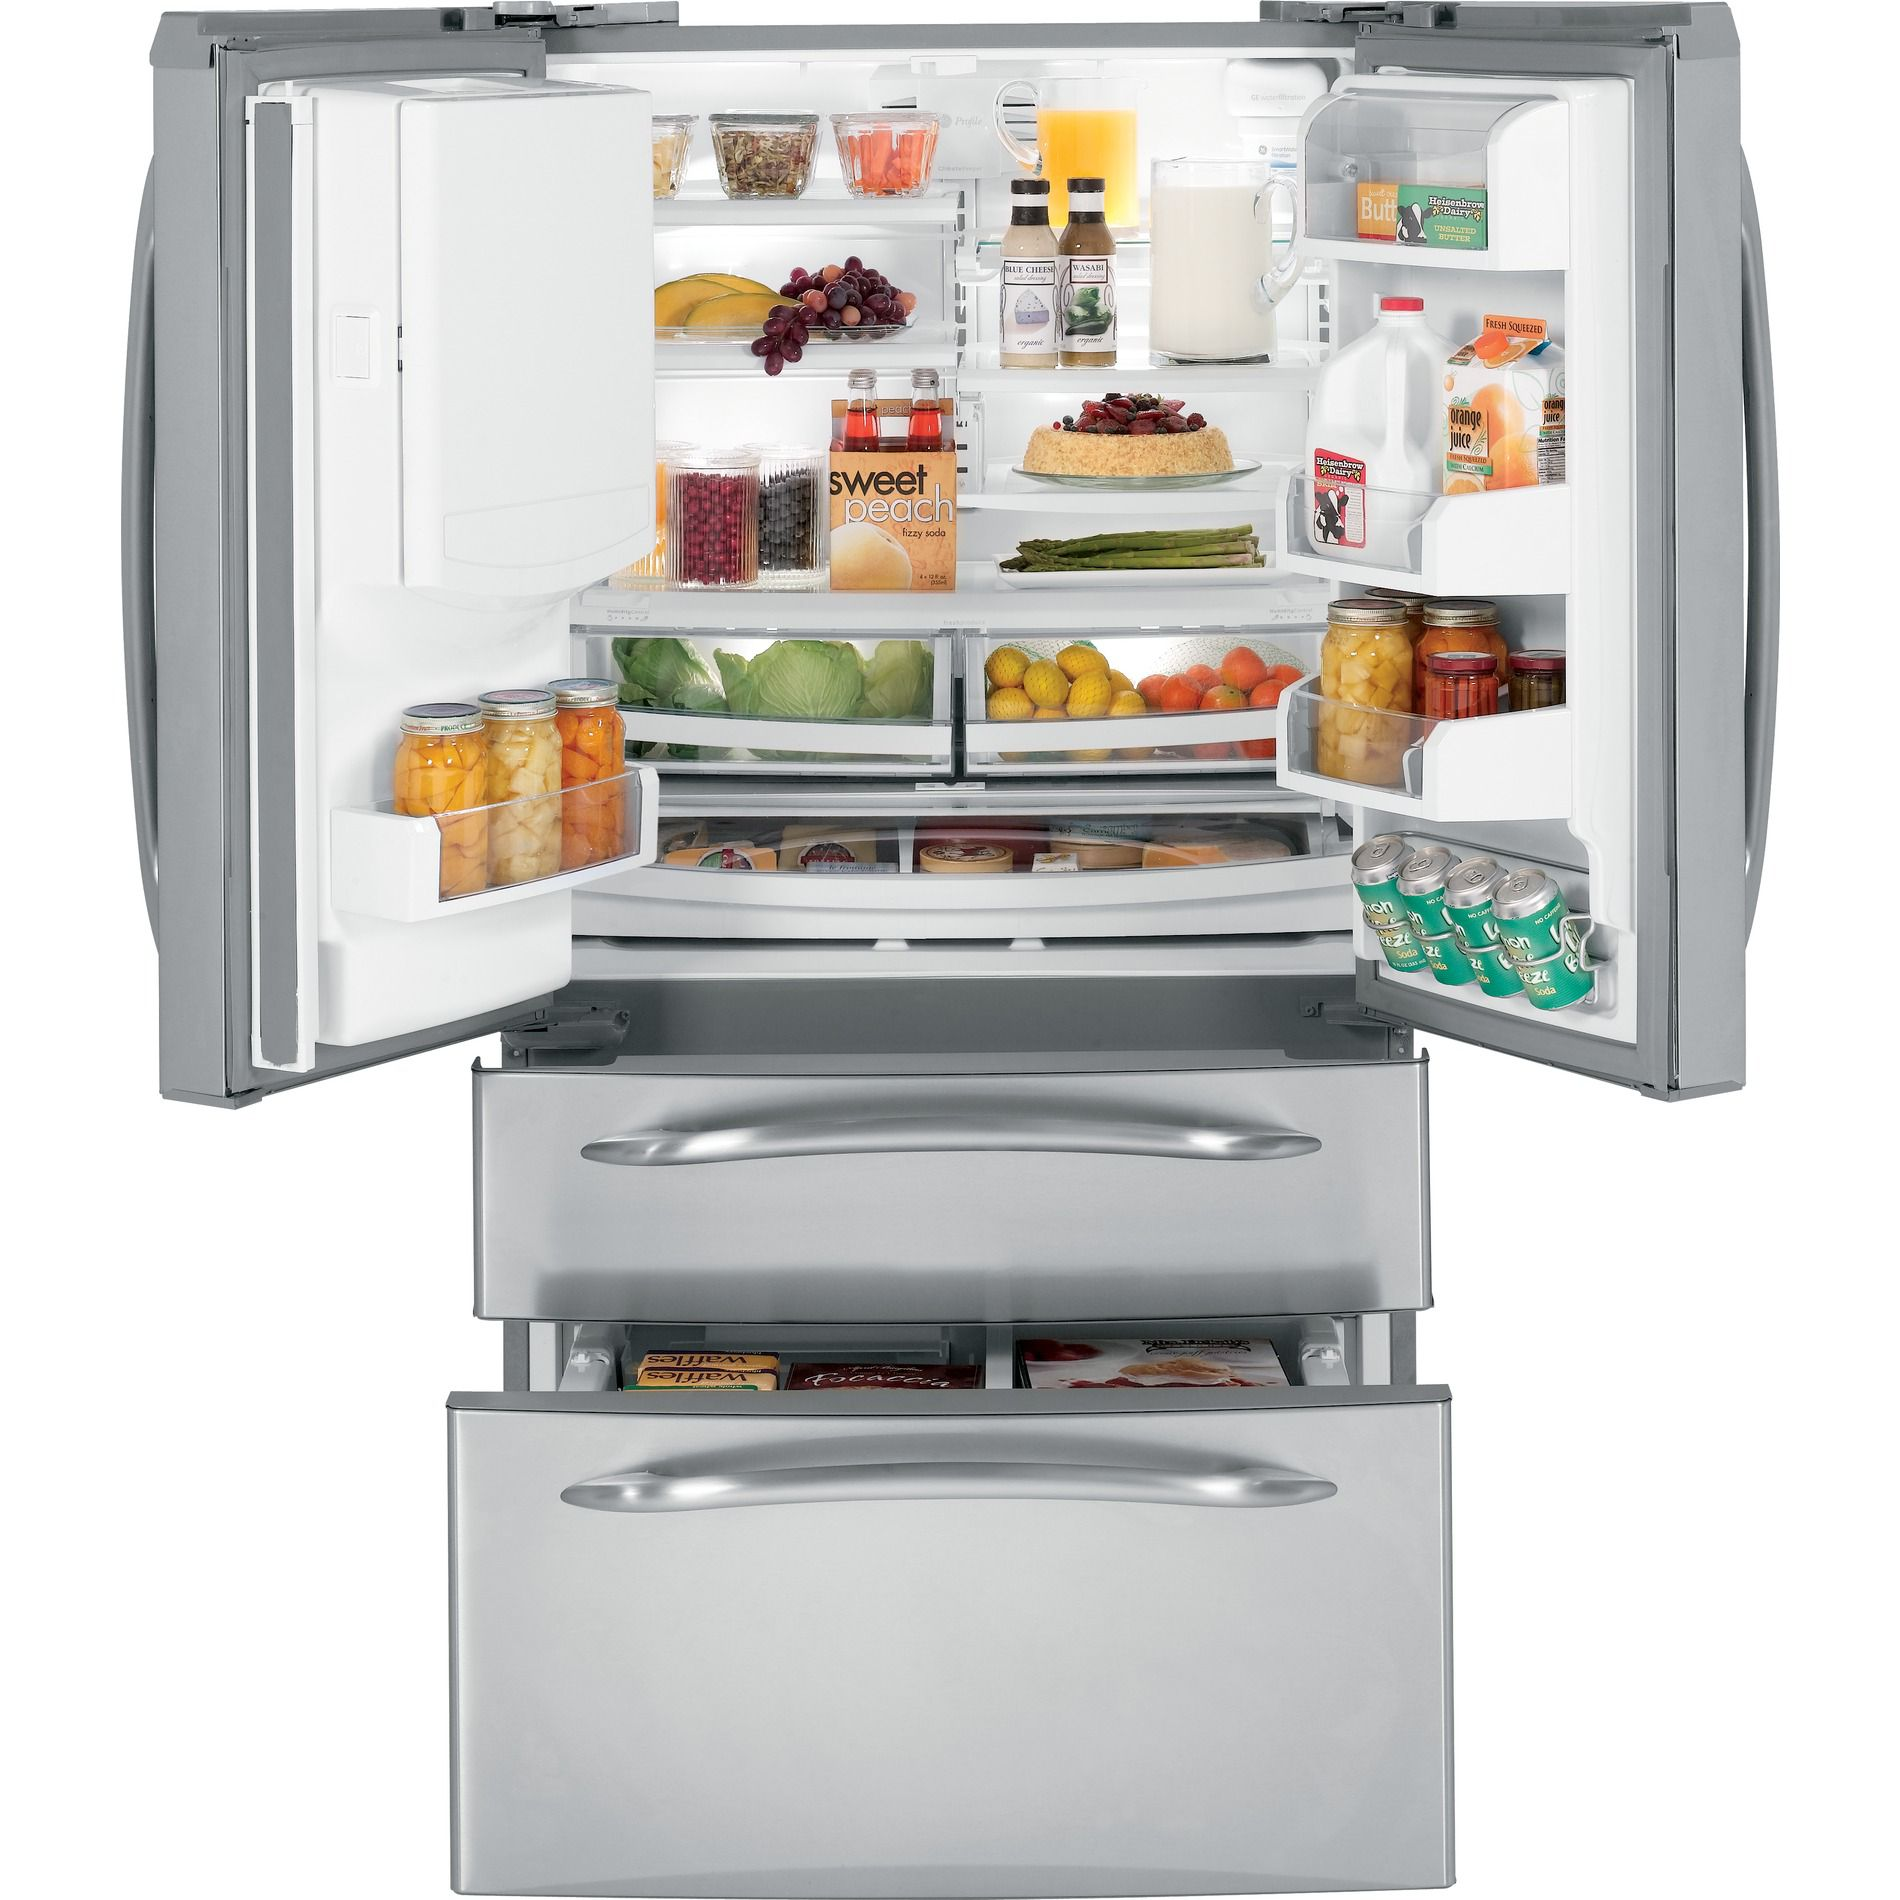 Profile™ Series 20.7 cu. ft. French-Door Bottom-Freezer Refrigerator - Stainless Steel                                     at mygofer.com